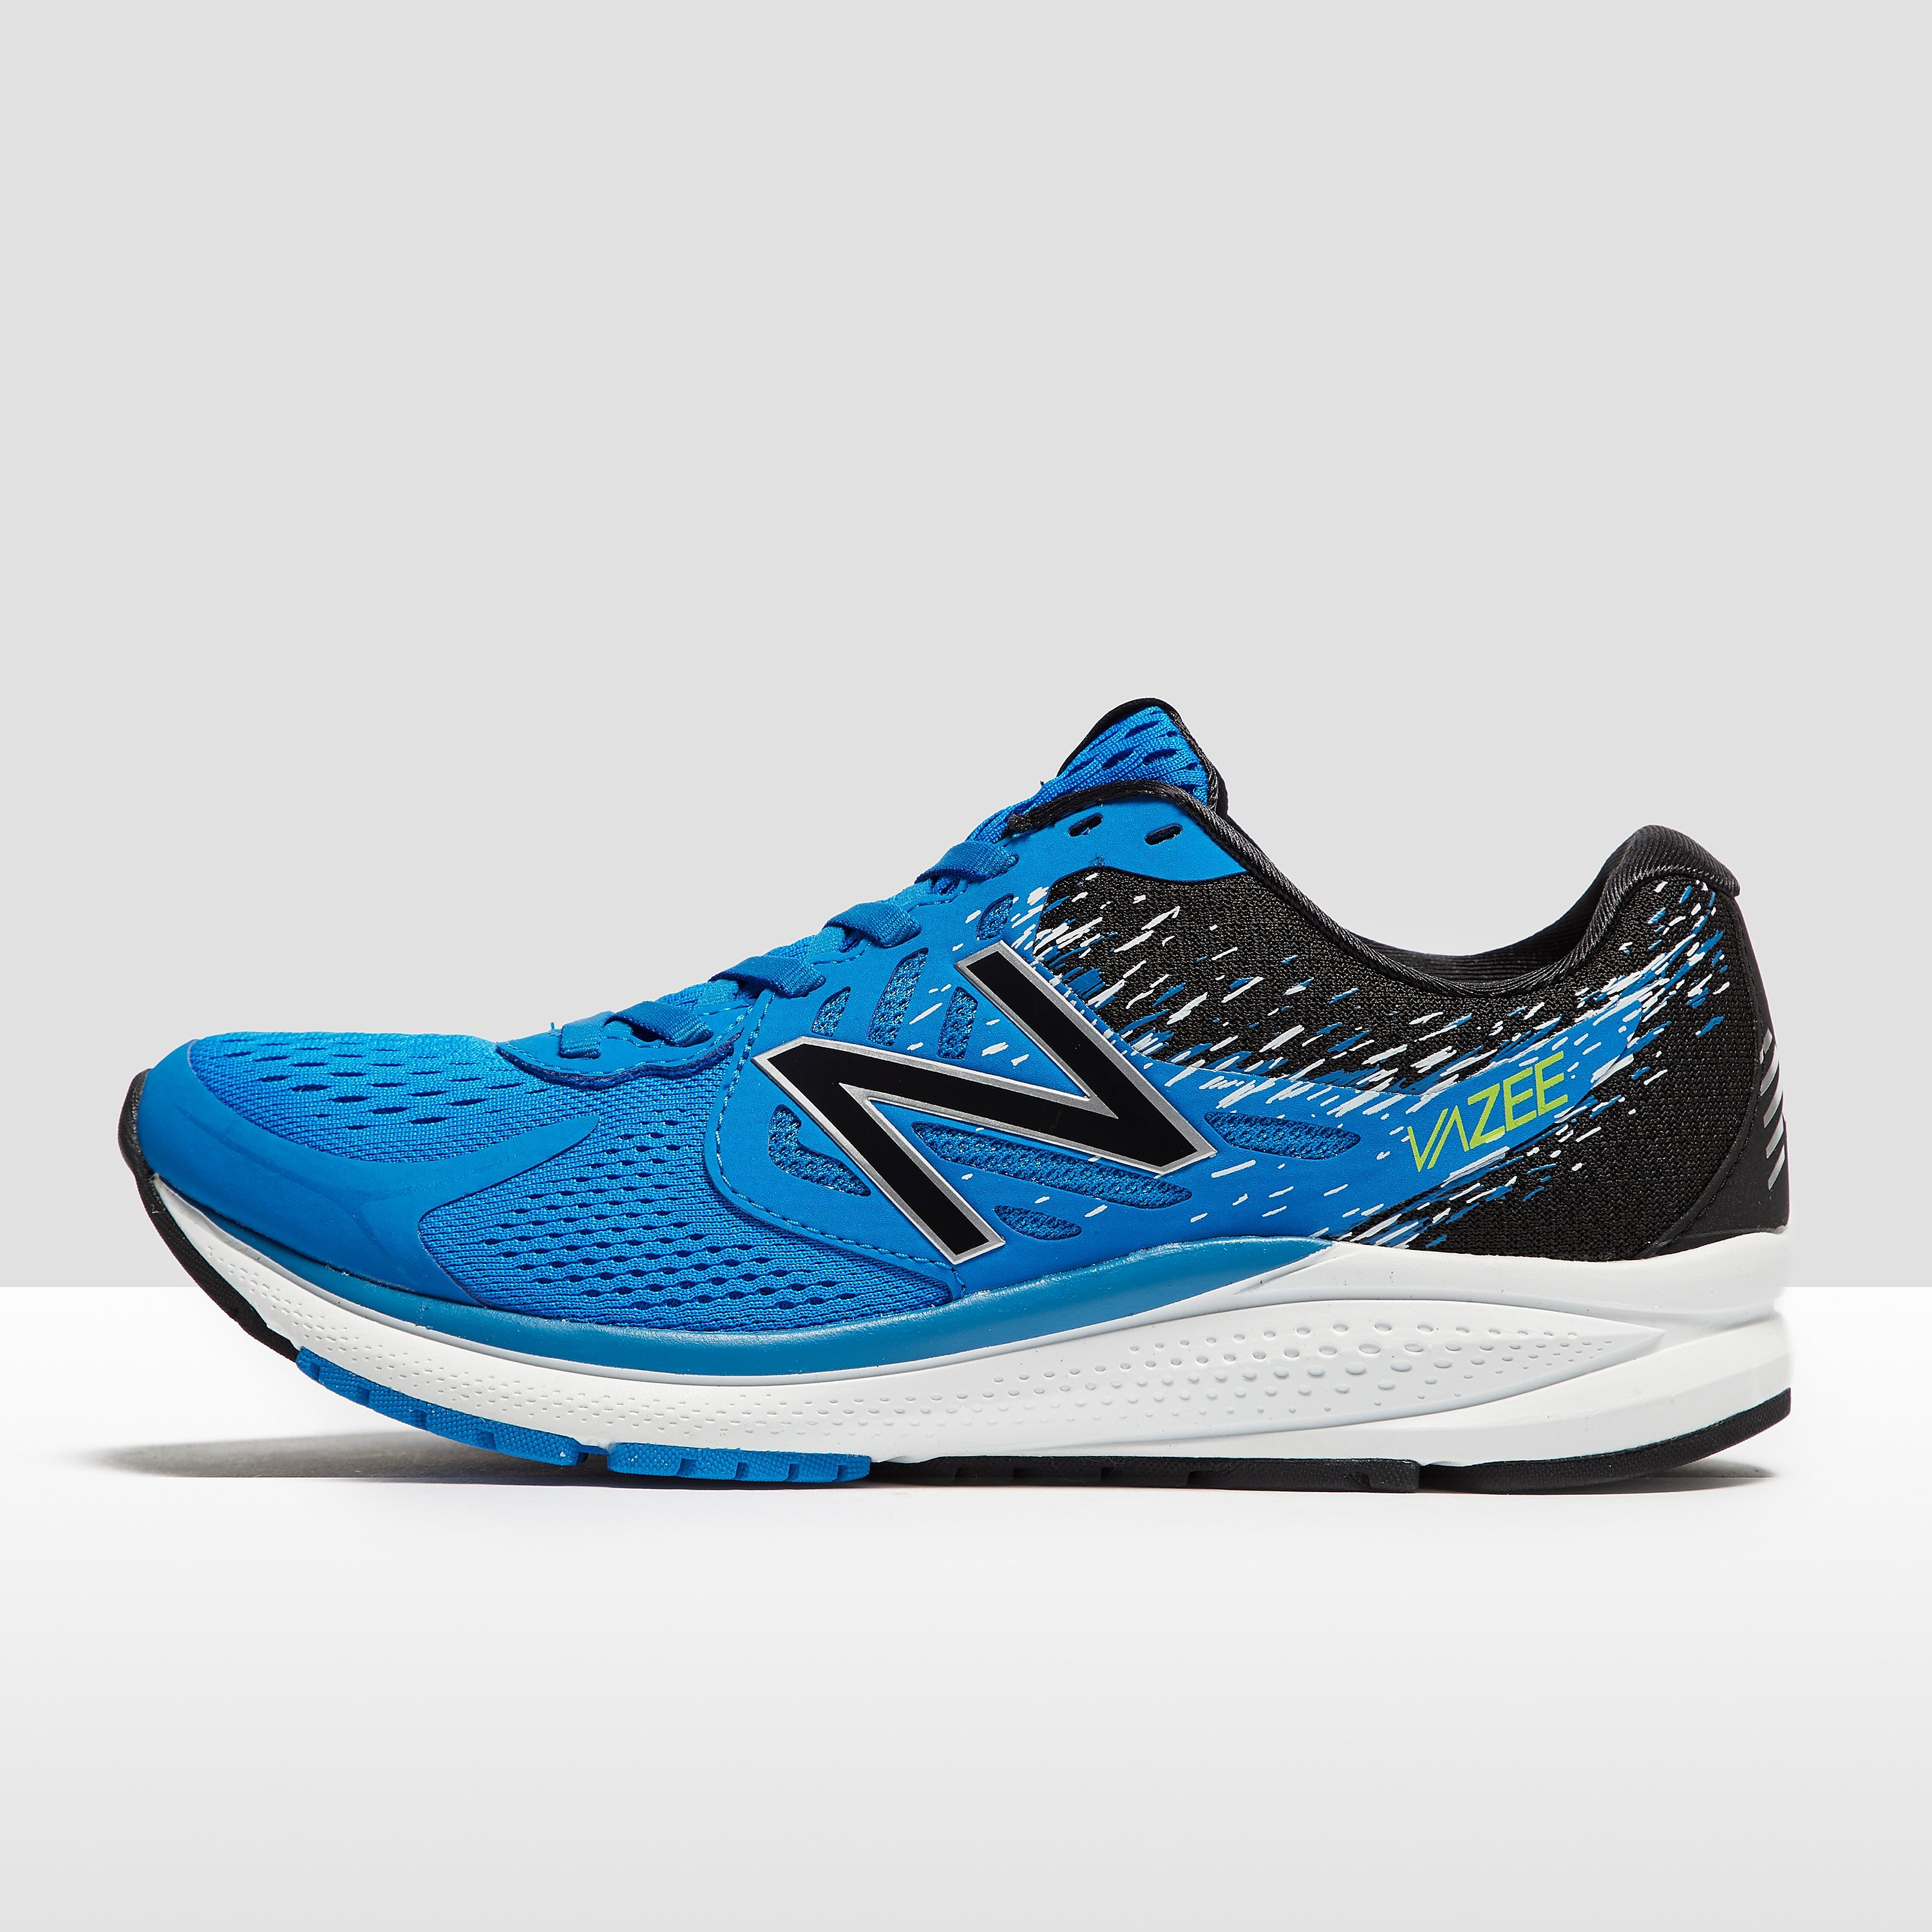 New Balance Vazee Prism v2 Men's Running Shoes